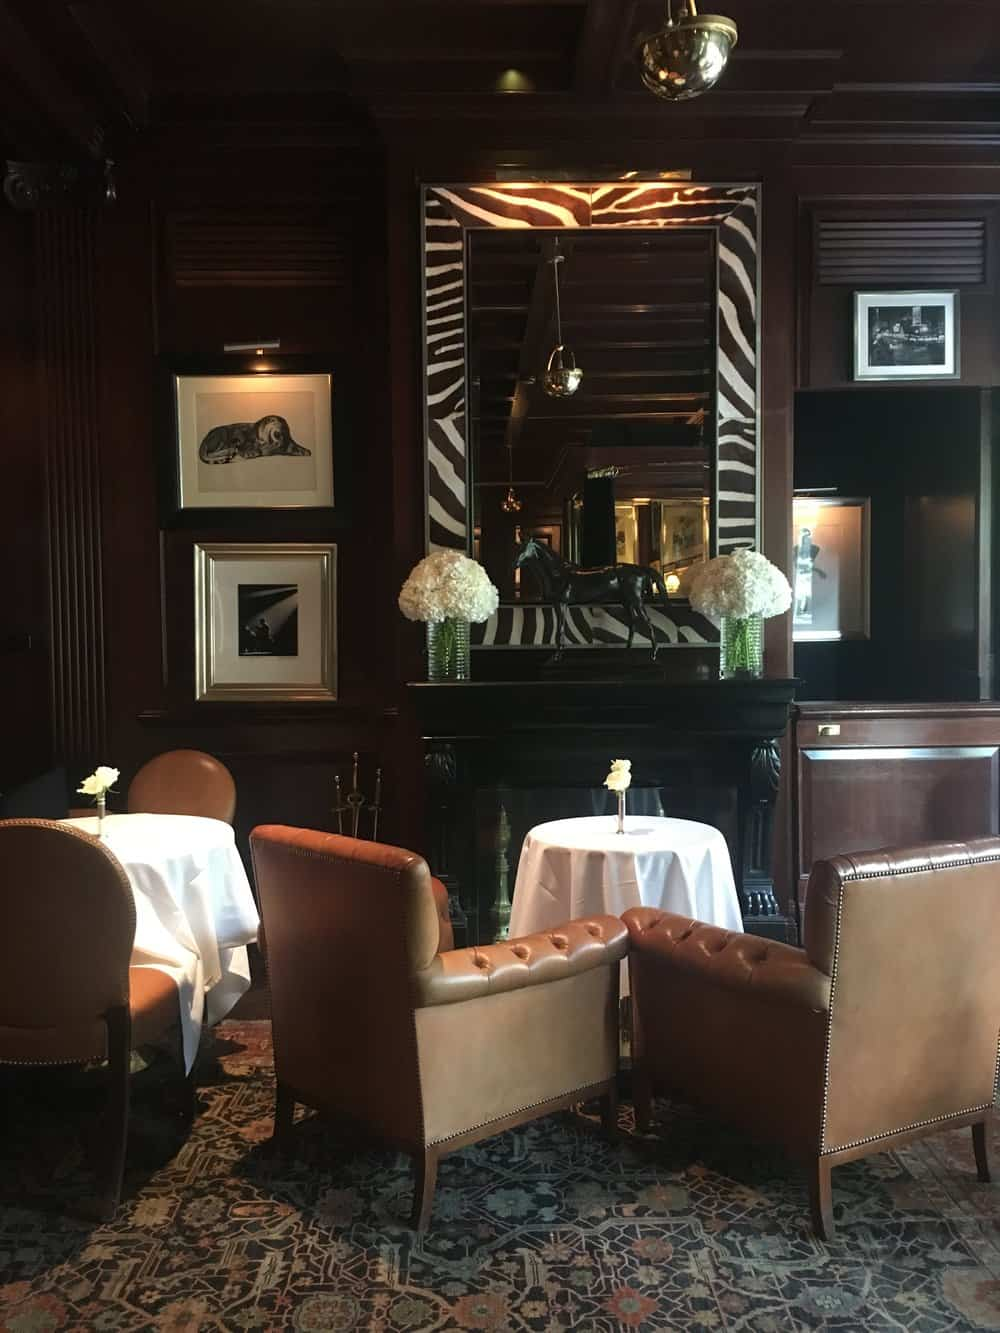 ralph lauren in chicago Chicago Guide by Rebecca Plotnick and Every Day Parisian